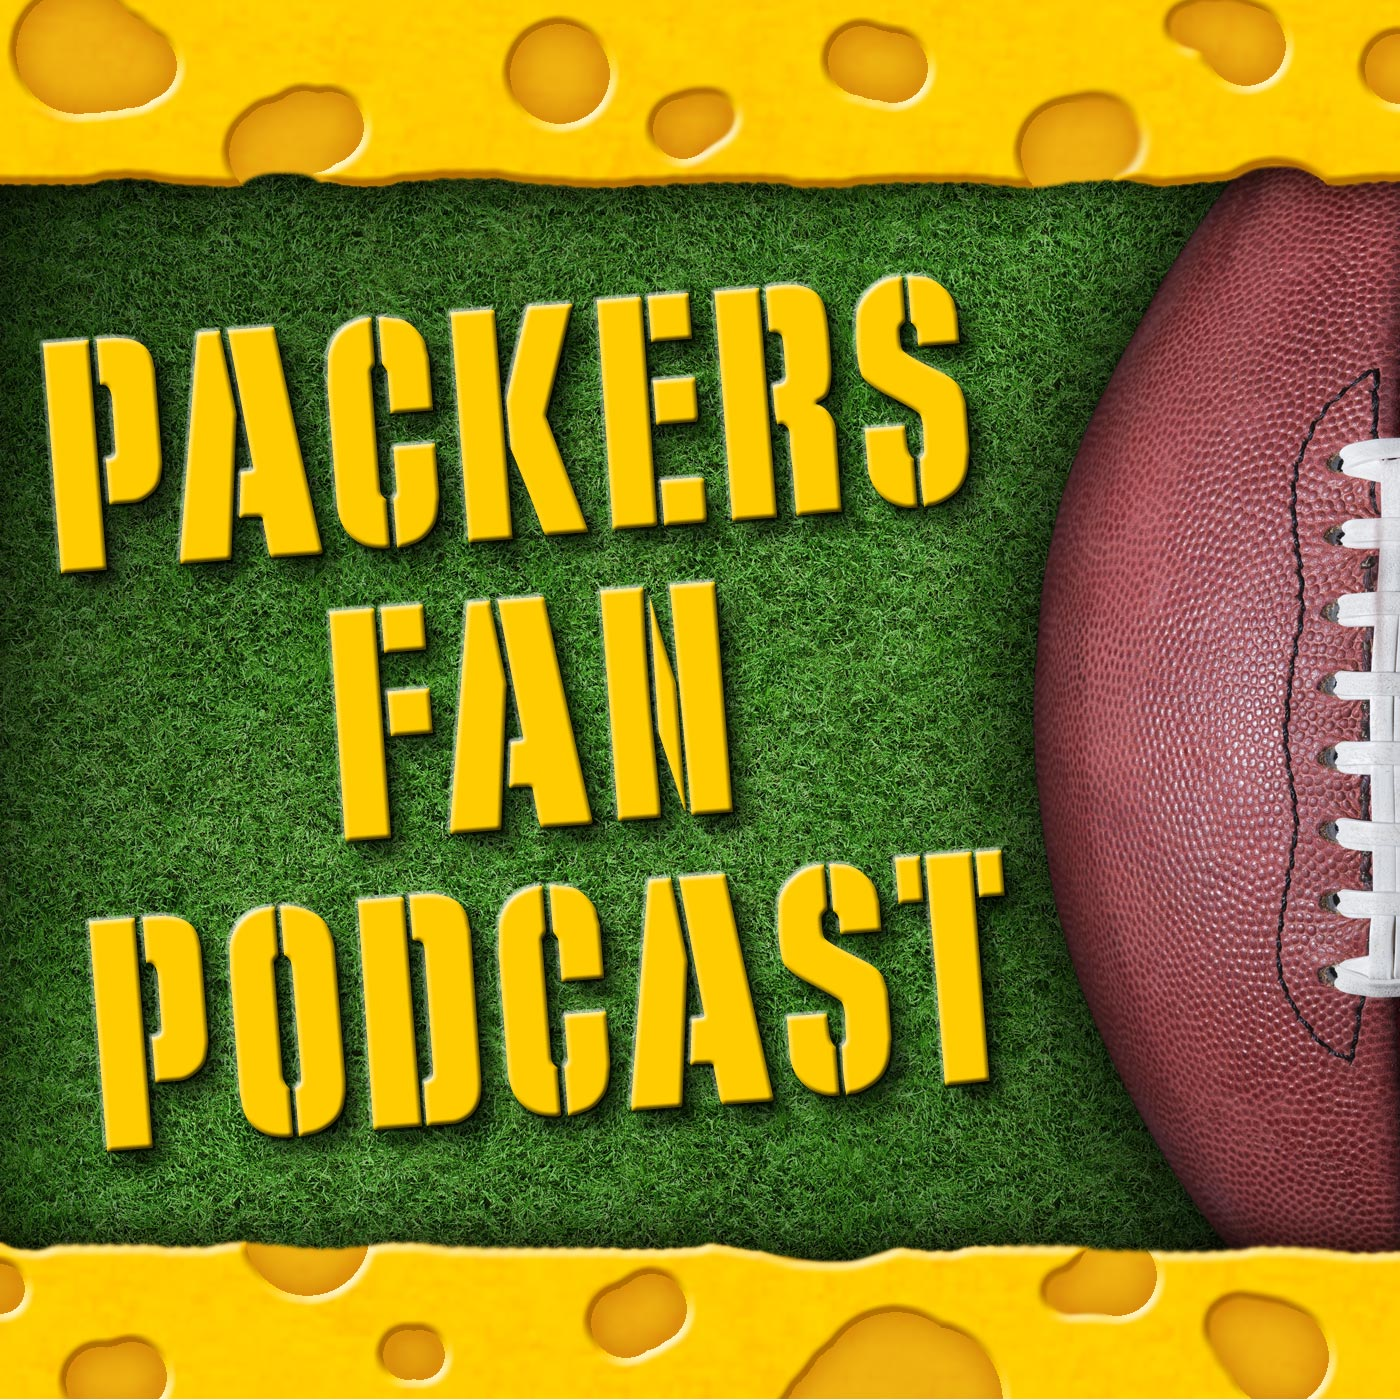 Packers Fan Podcast | Unofficial Green Bay Packers Talk show art